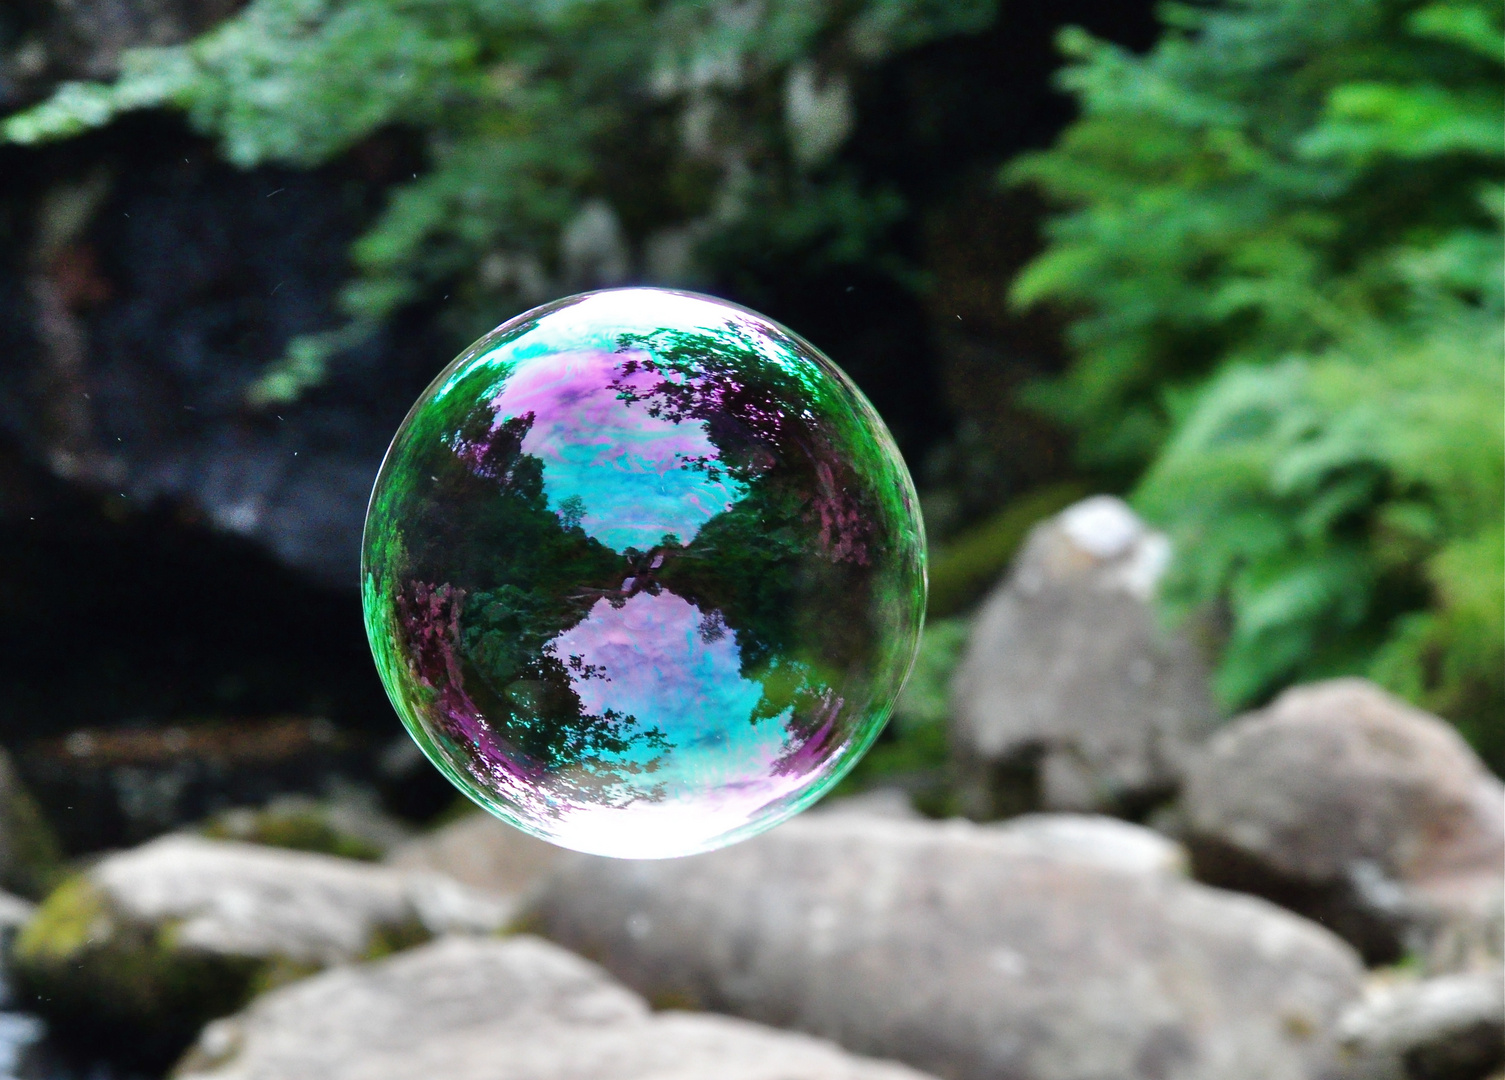 Reflection caught in a bubble